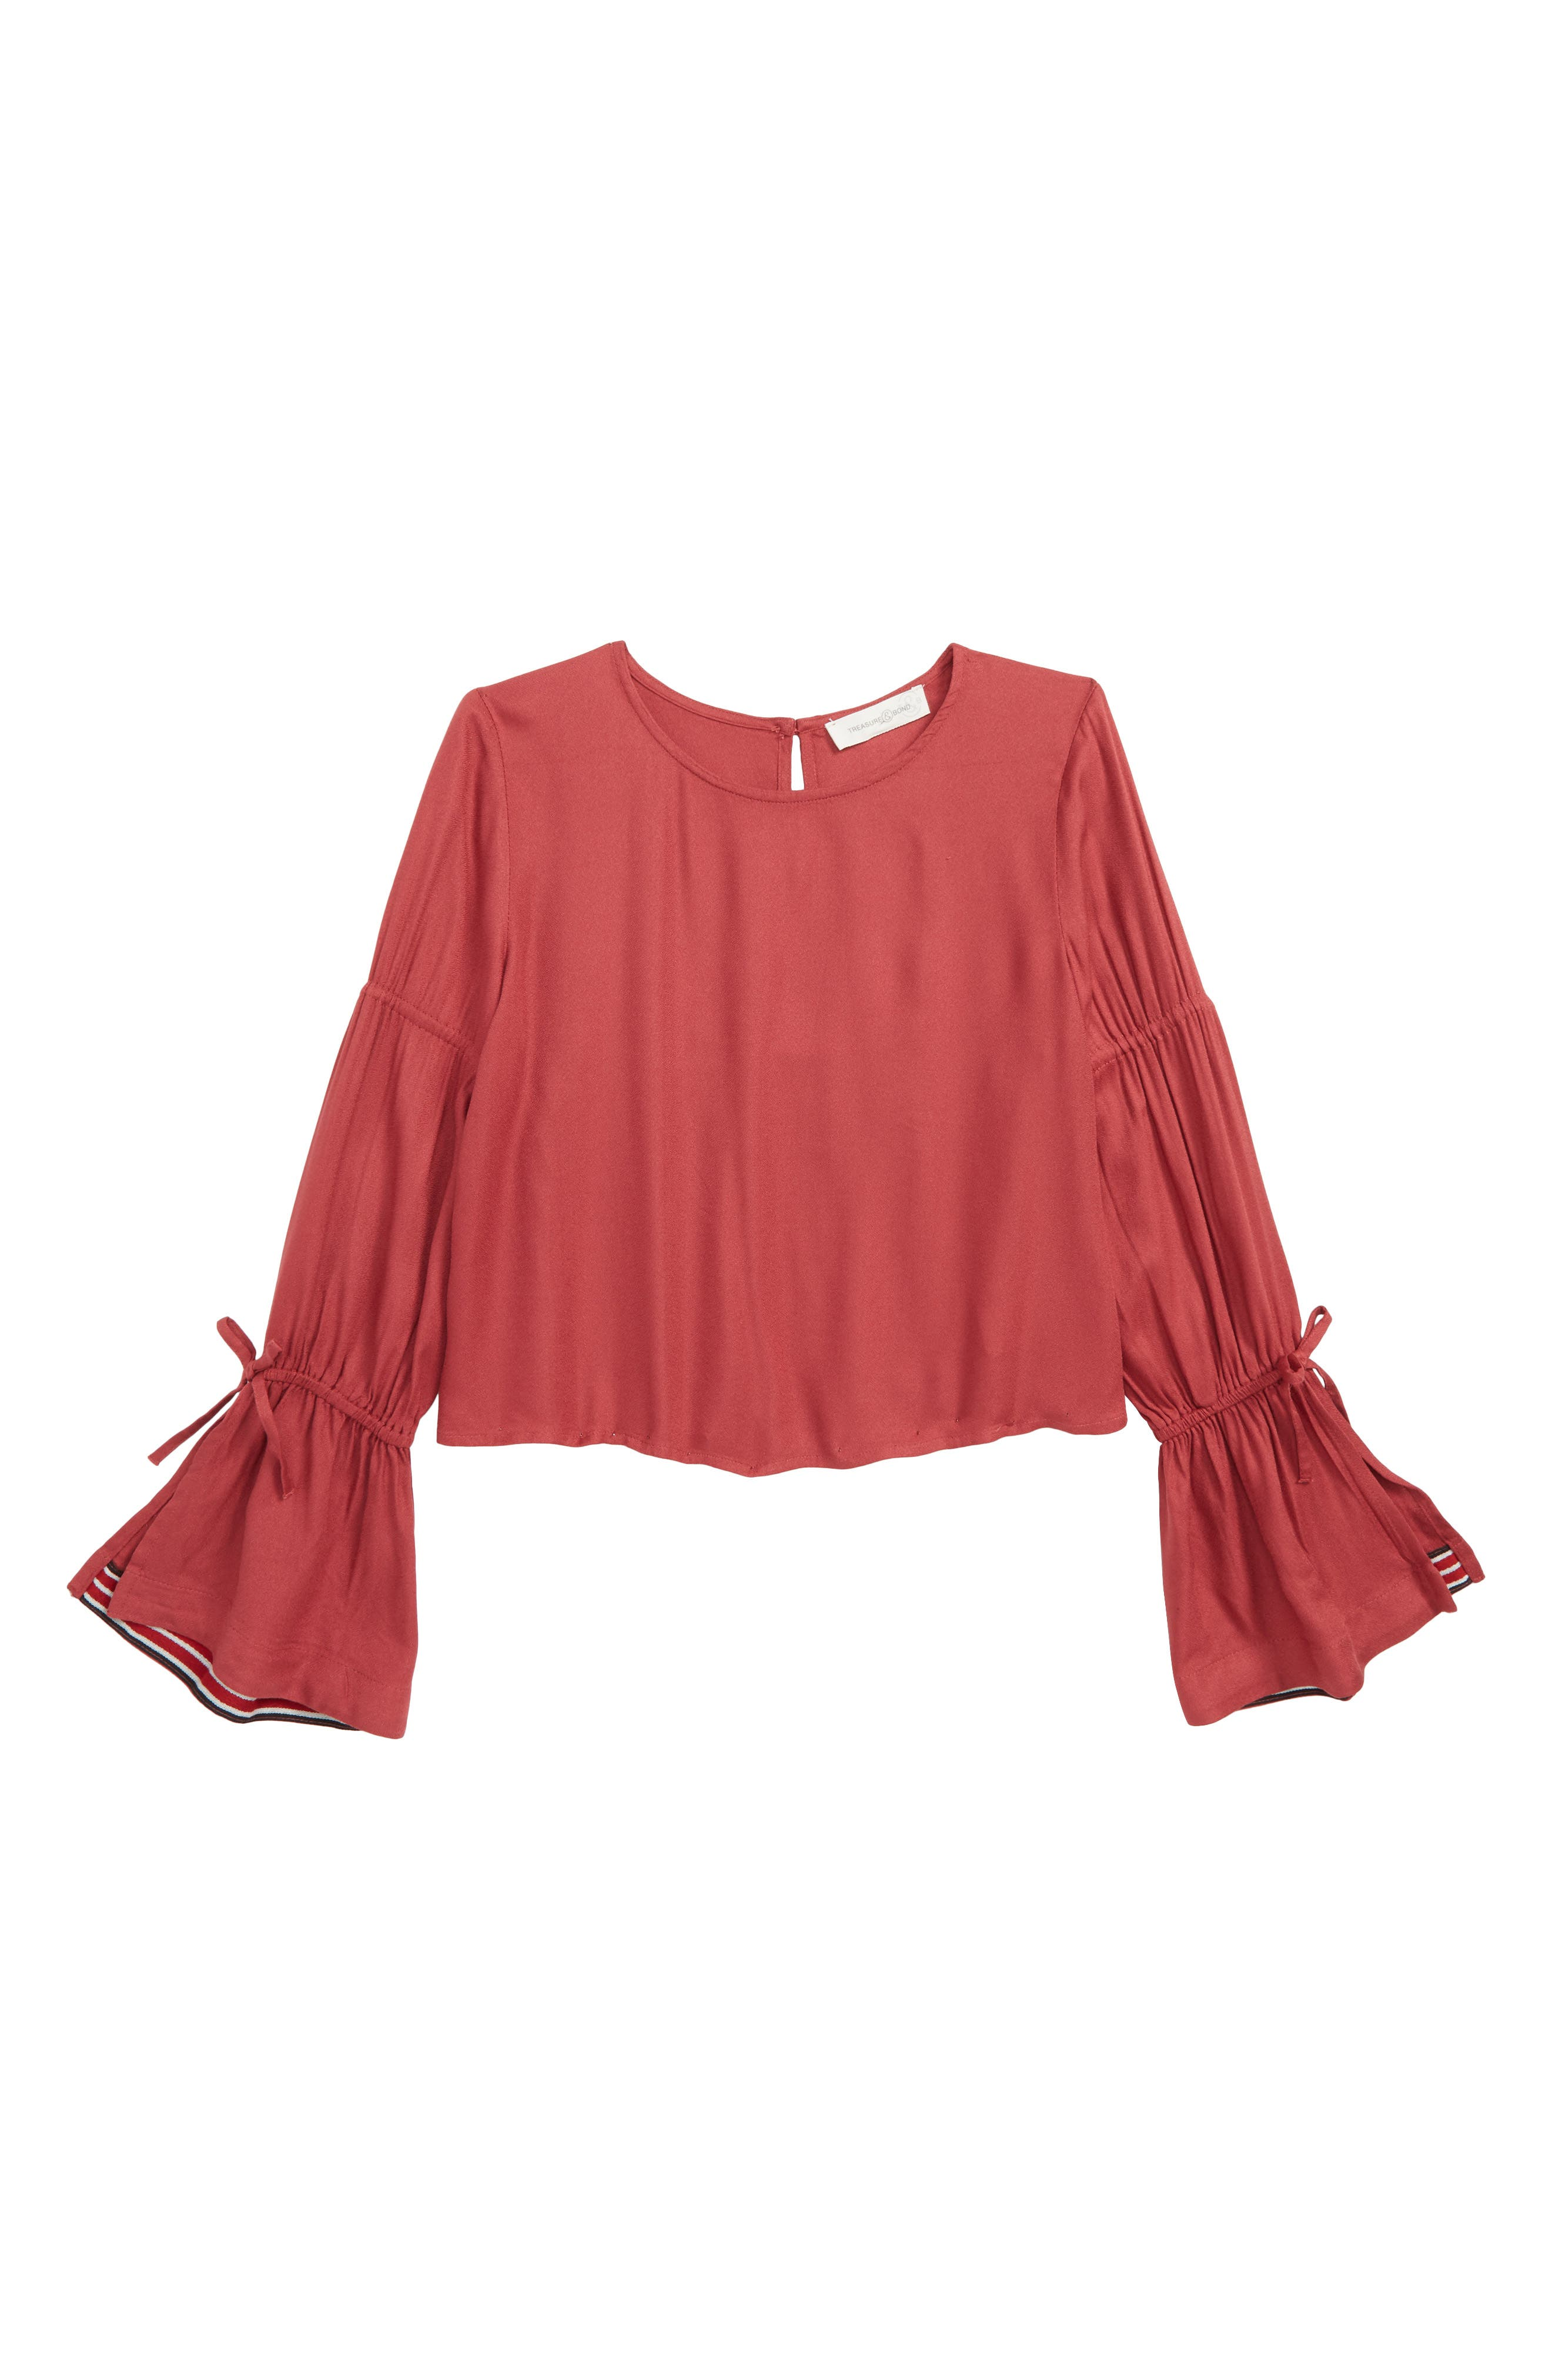 Bell Sleeve Top,                             Main thumbnail 1, color,                             RED EARTH